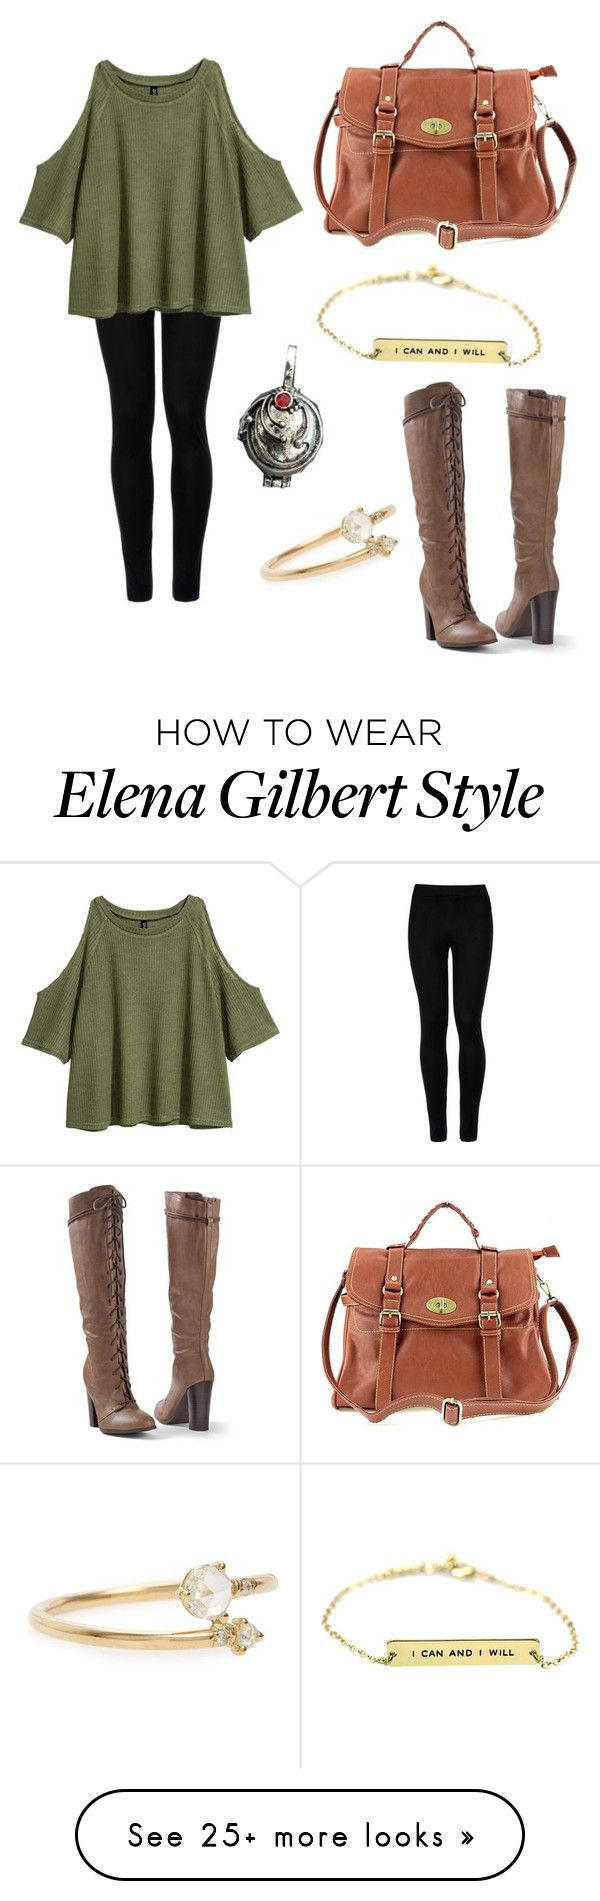 """"""". . ."""" by gbaunton on Polyvore featuring Venus, Wolford and WWAKE"""